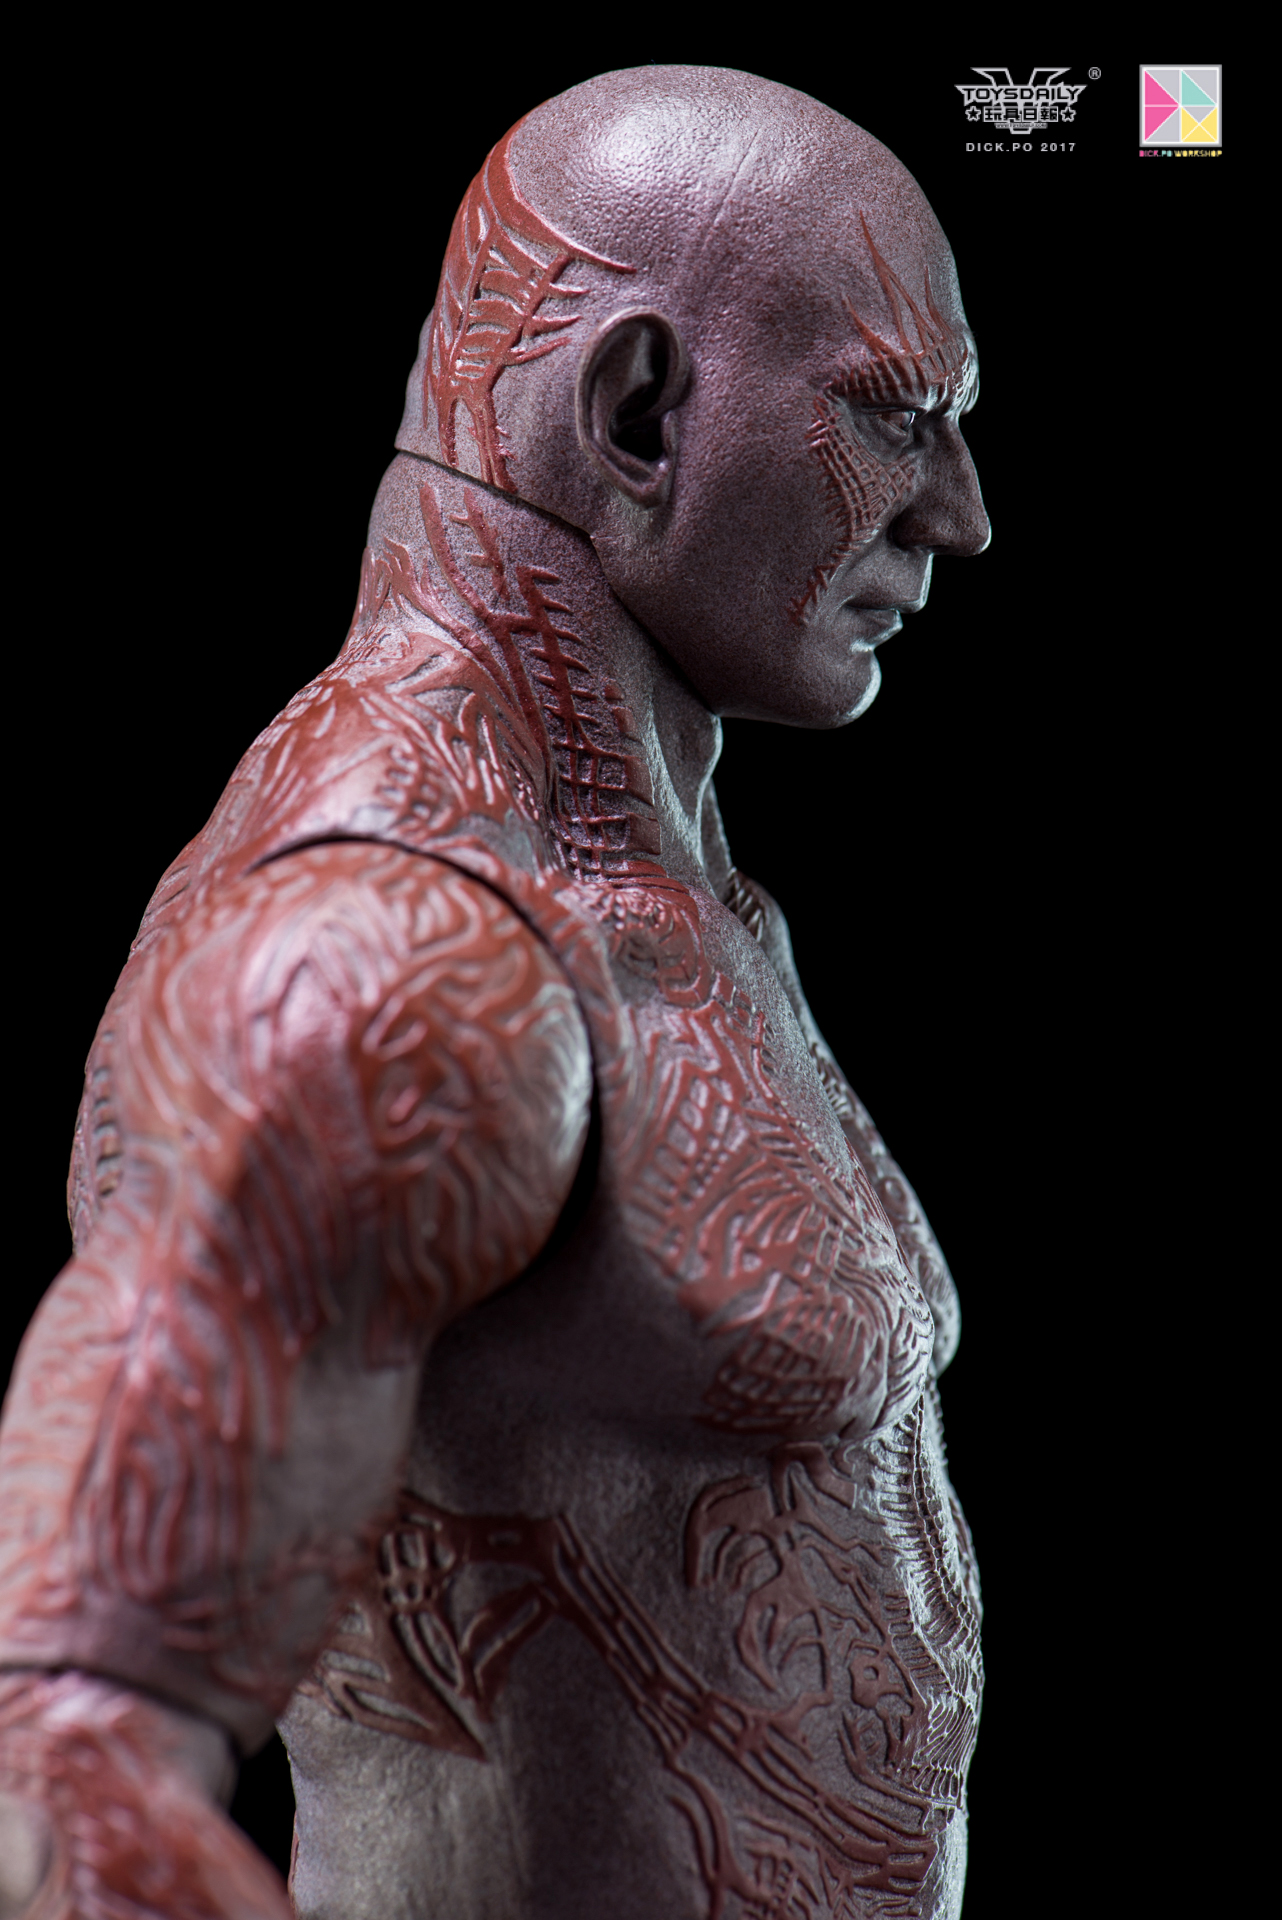 toysdaily_dick.po_Hottoys_DARX-14.jpg